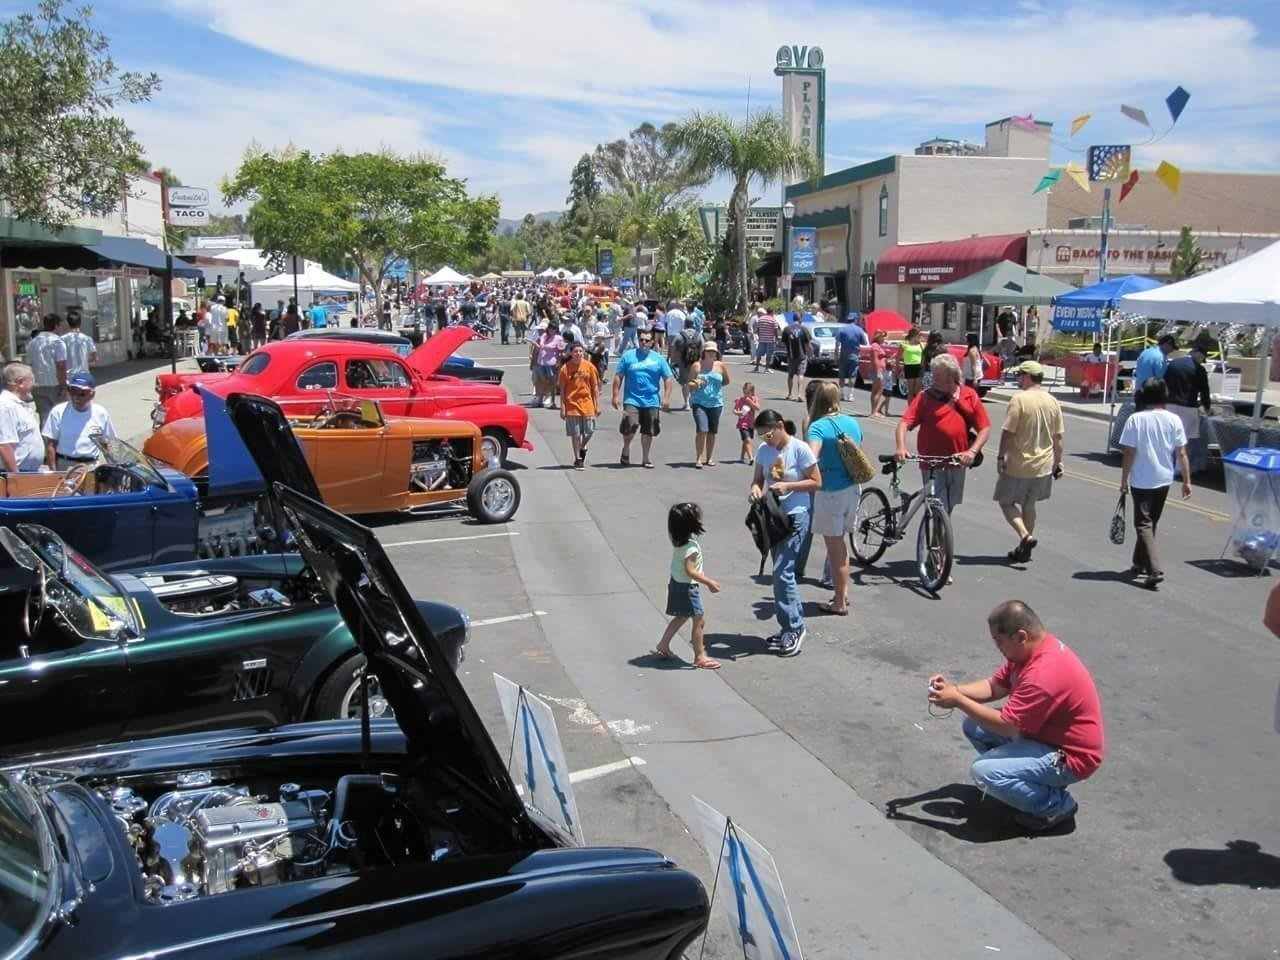 San Go S Summer Car Show Season Iting On All Cylinders With Weekly Cruise Nights And Weekend Socialeets The Union Tribune